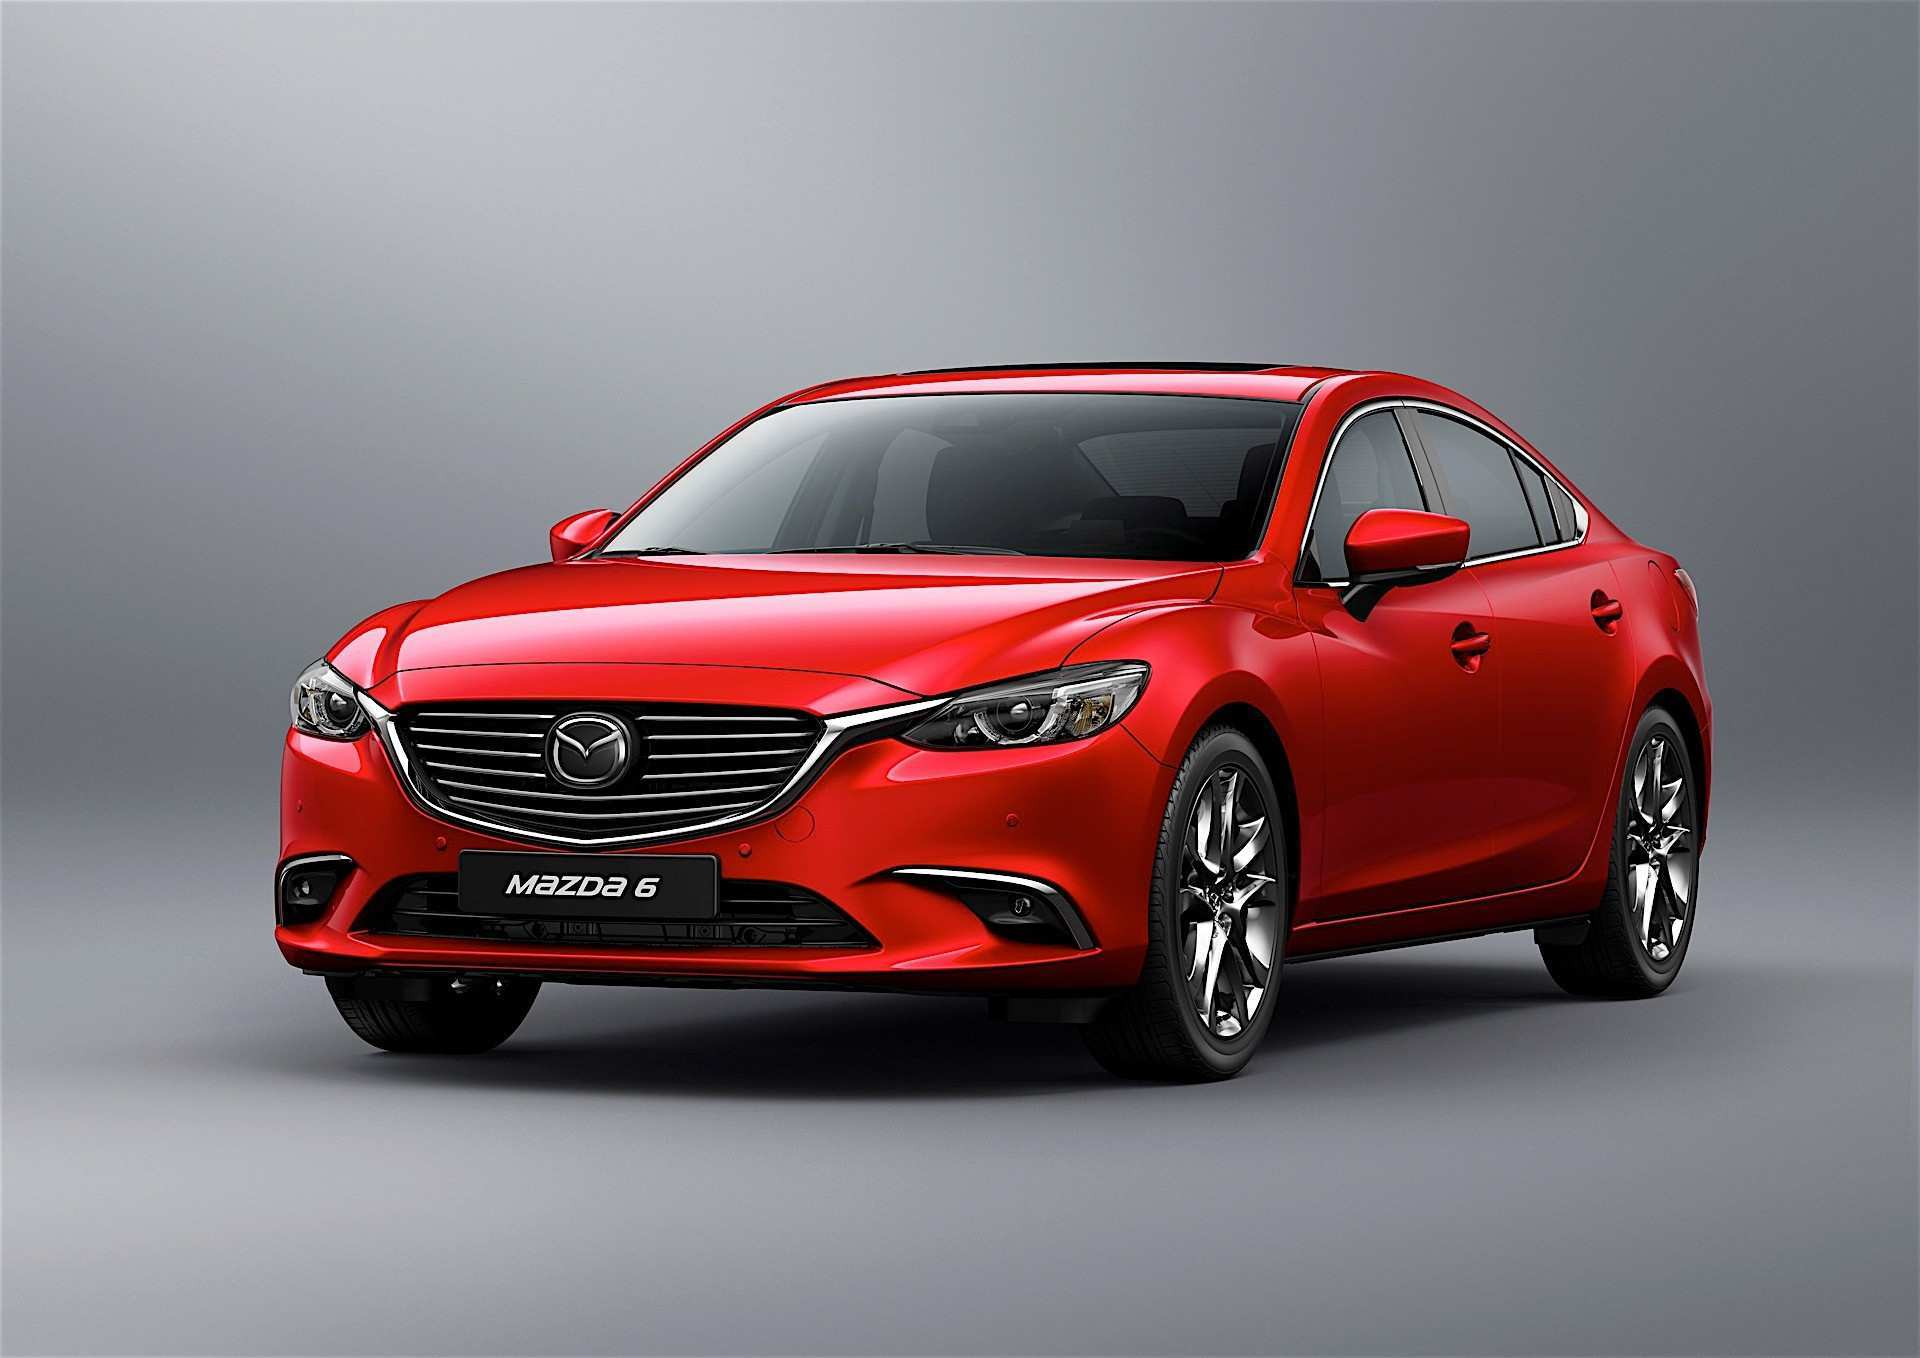 84 The 2020 Mazda 6 Awd Review for 2020 Mazda 6 Awd